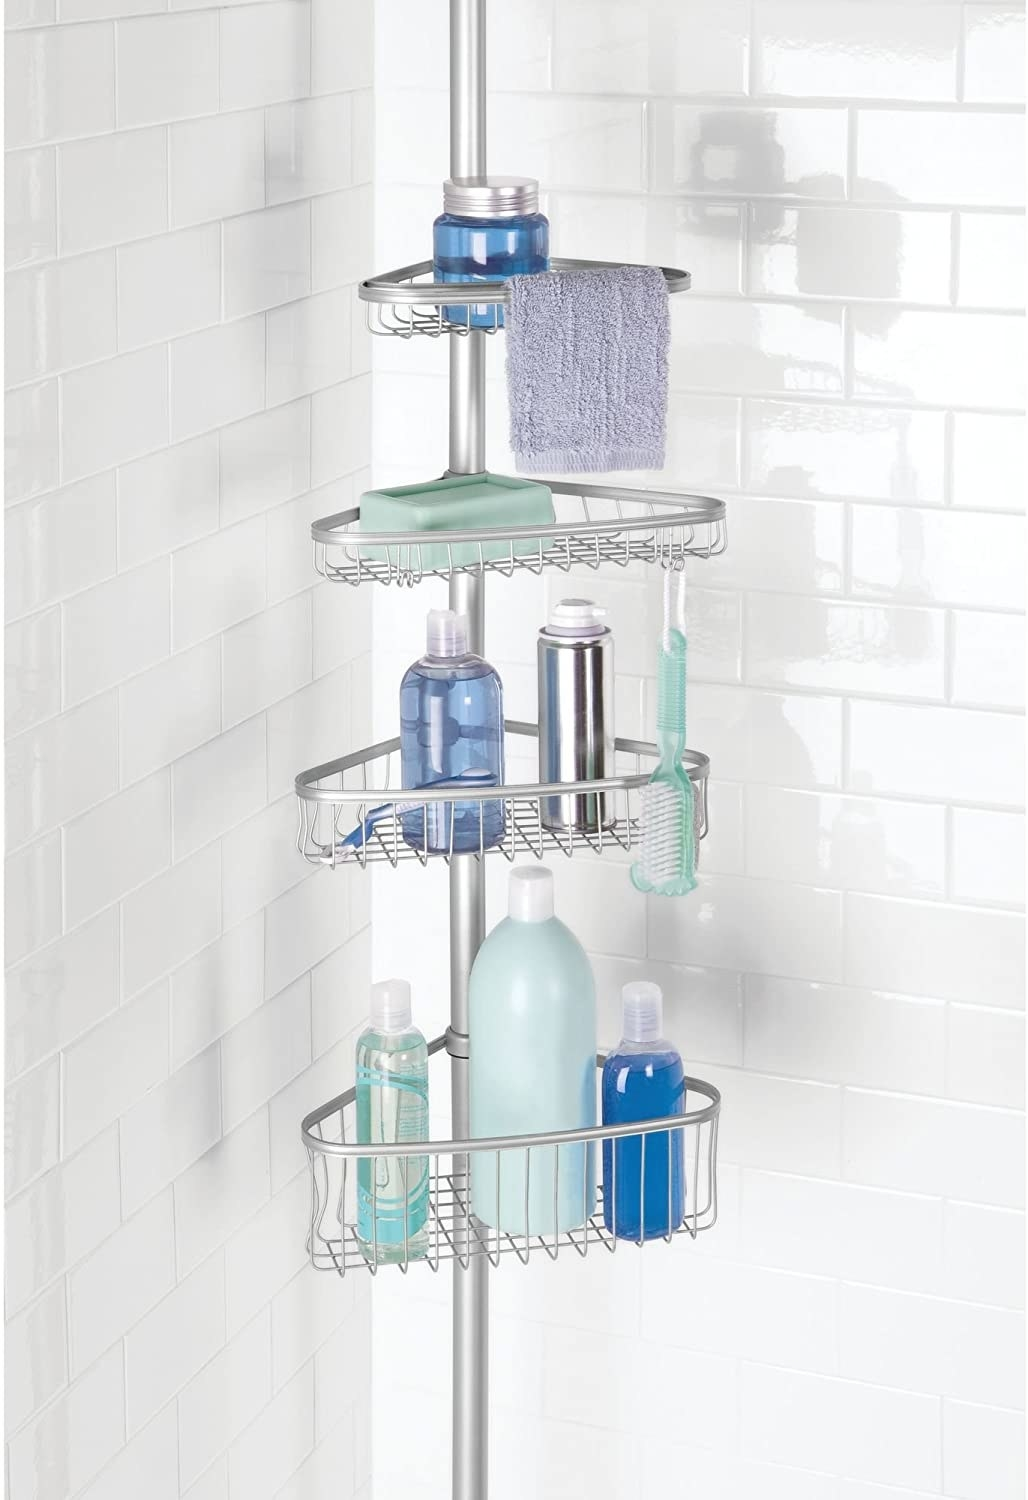 The wire corner shower shelf holds shampoo bottles and other shower products